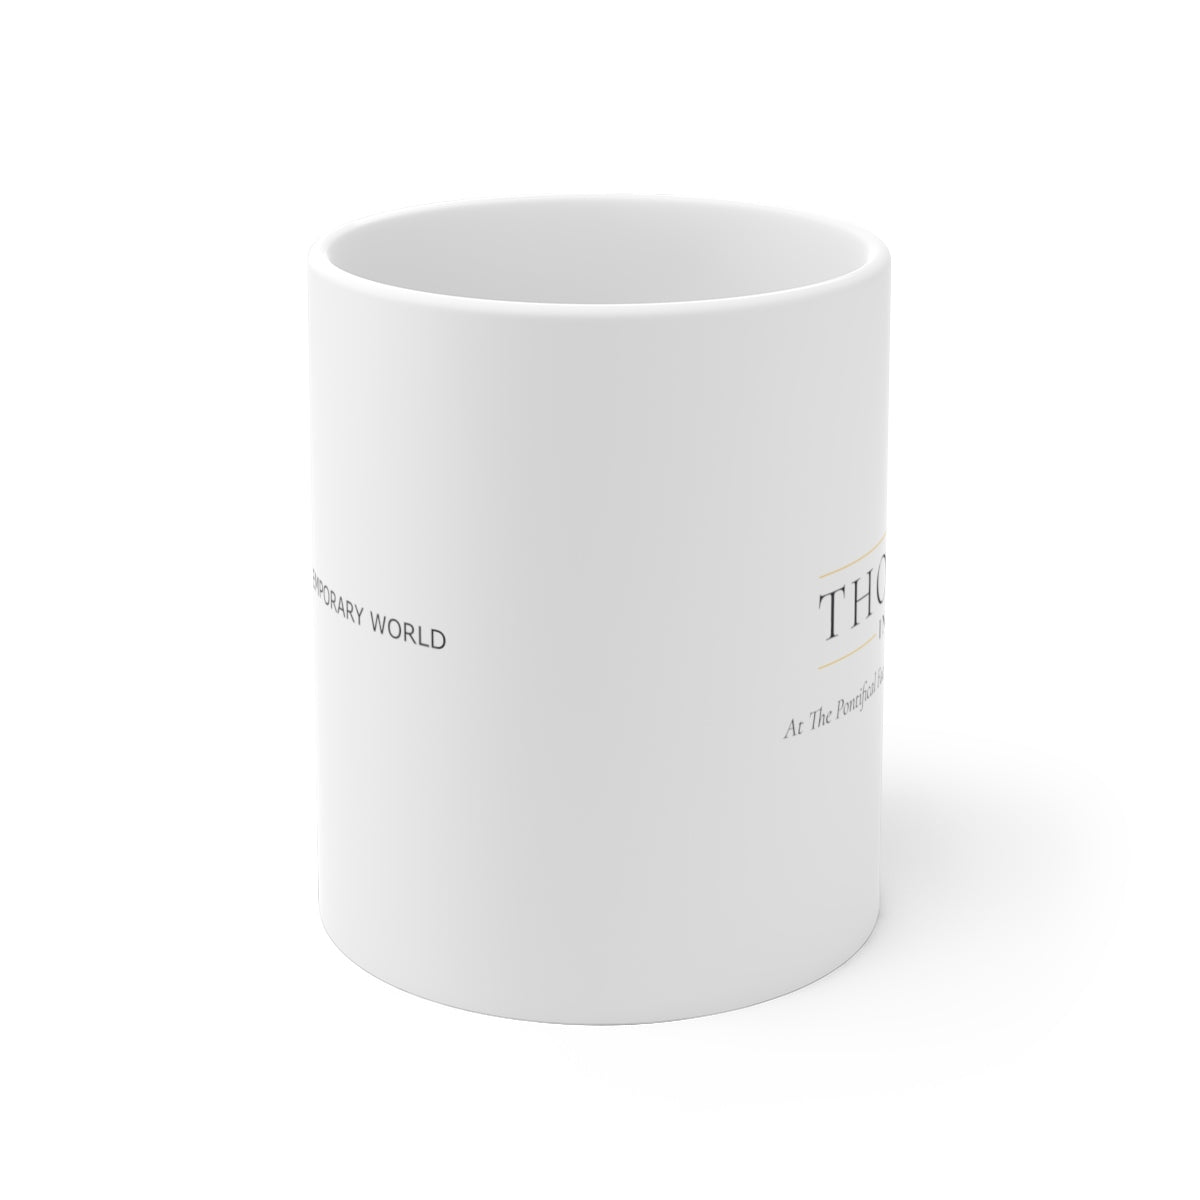 Thomistic White Ceramic Mug